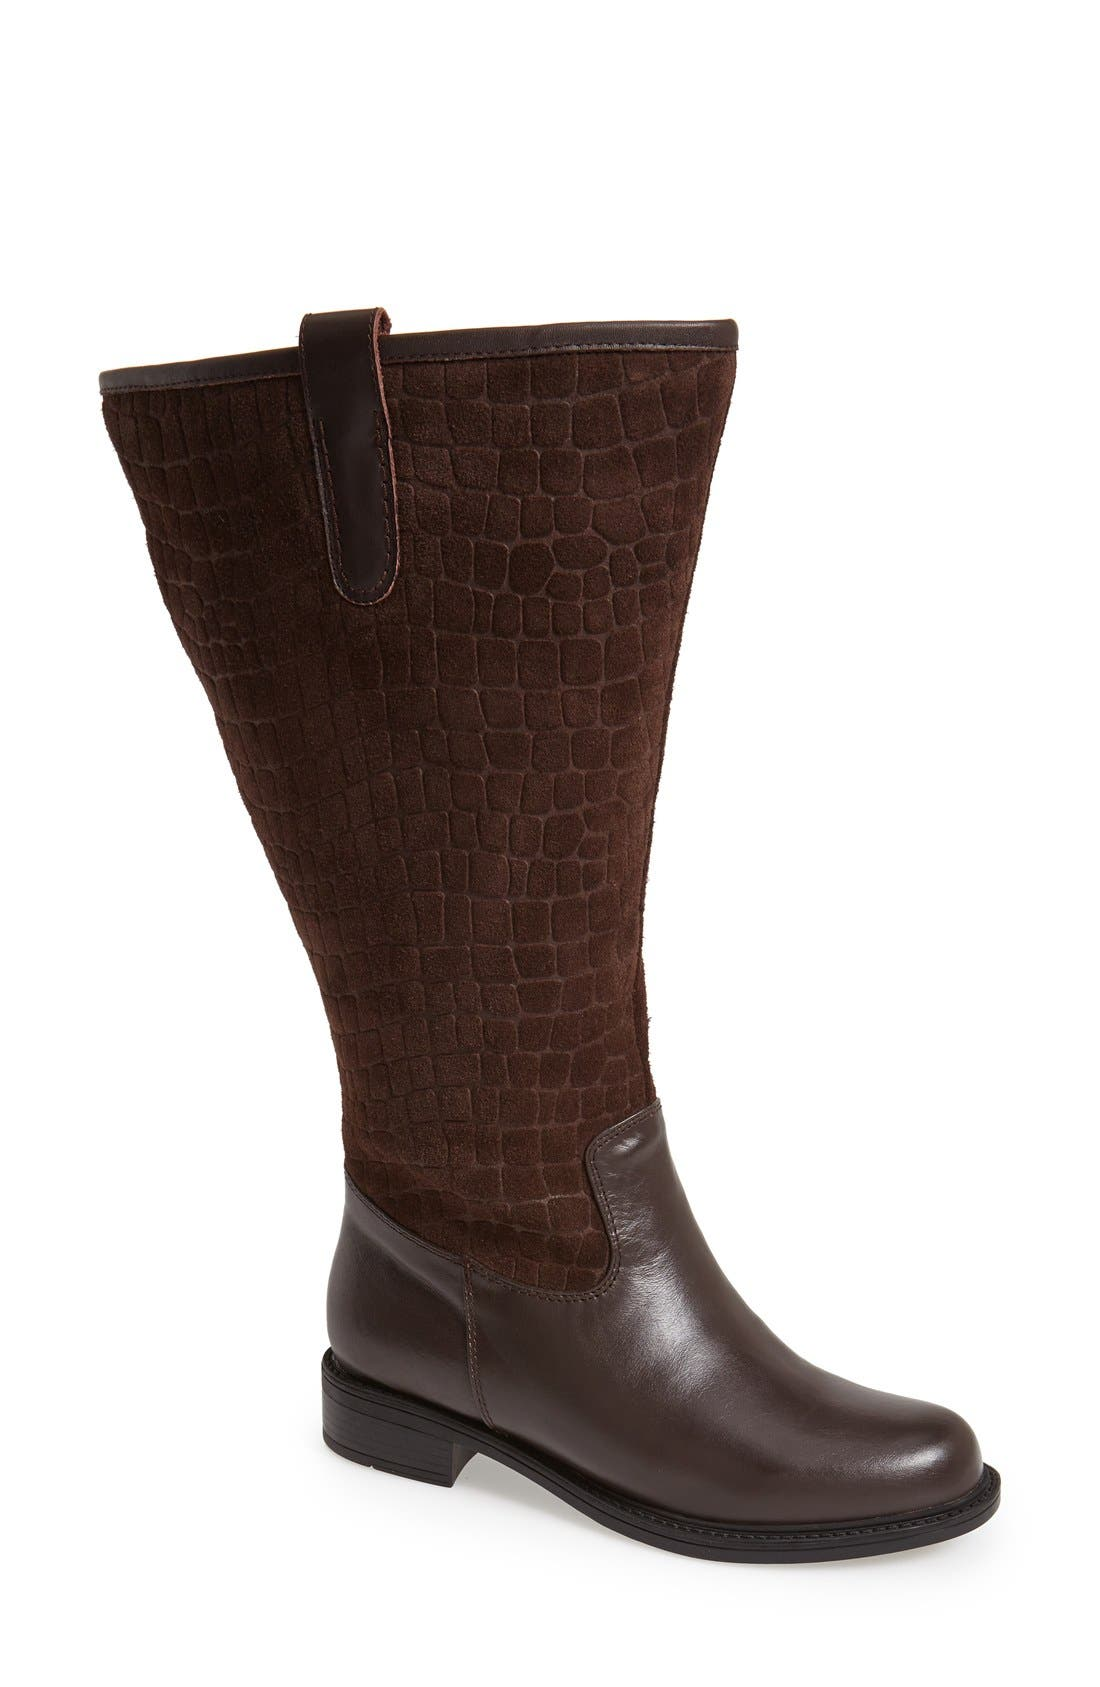 David Tate 'Best' Calfskin Leather & Suede Boot (Extra Wide Calf)